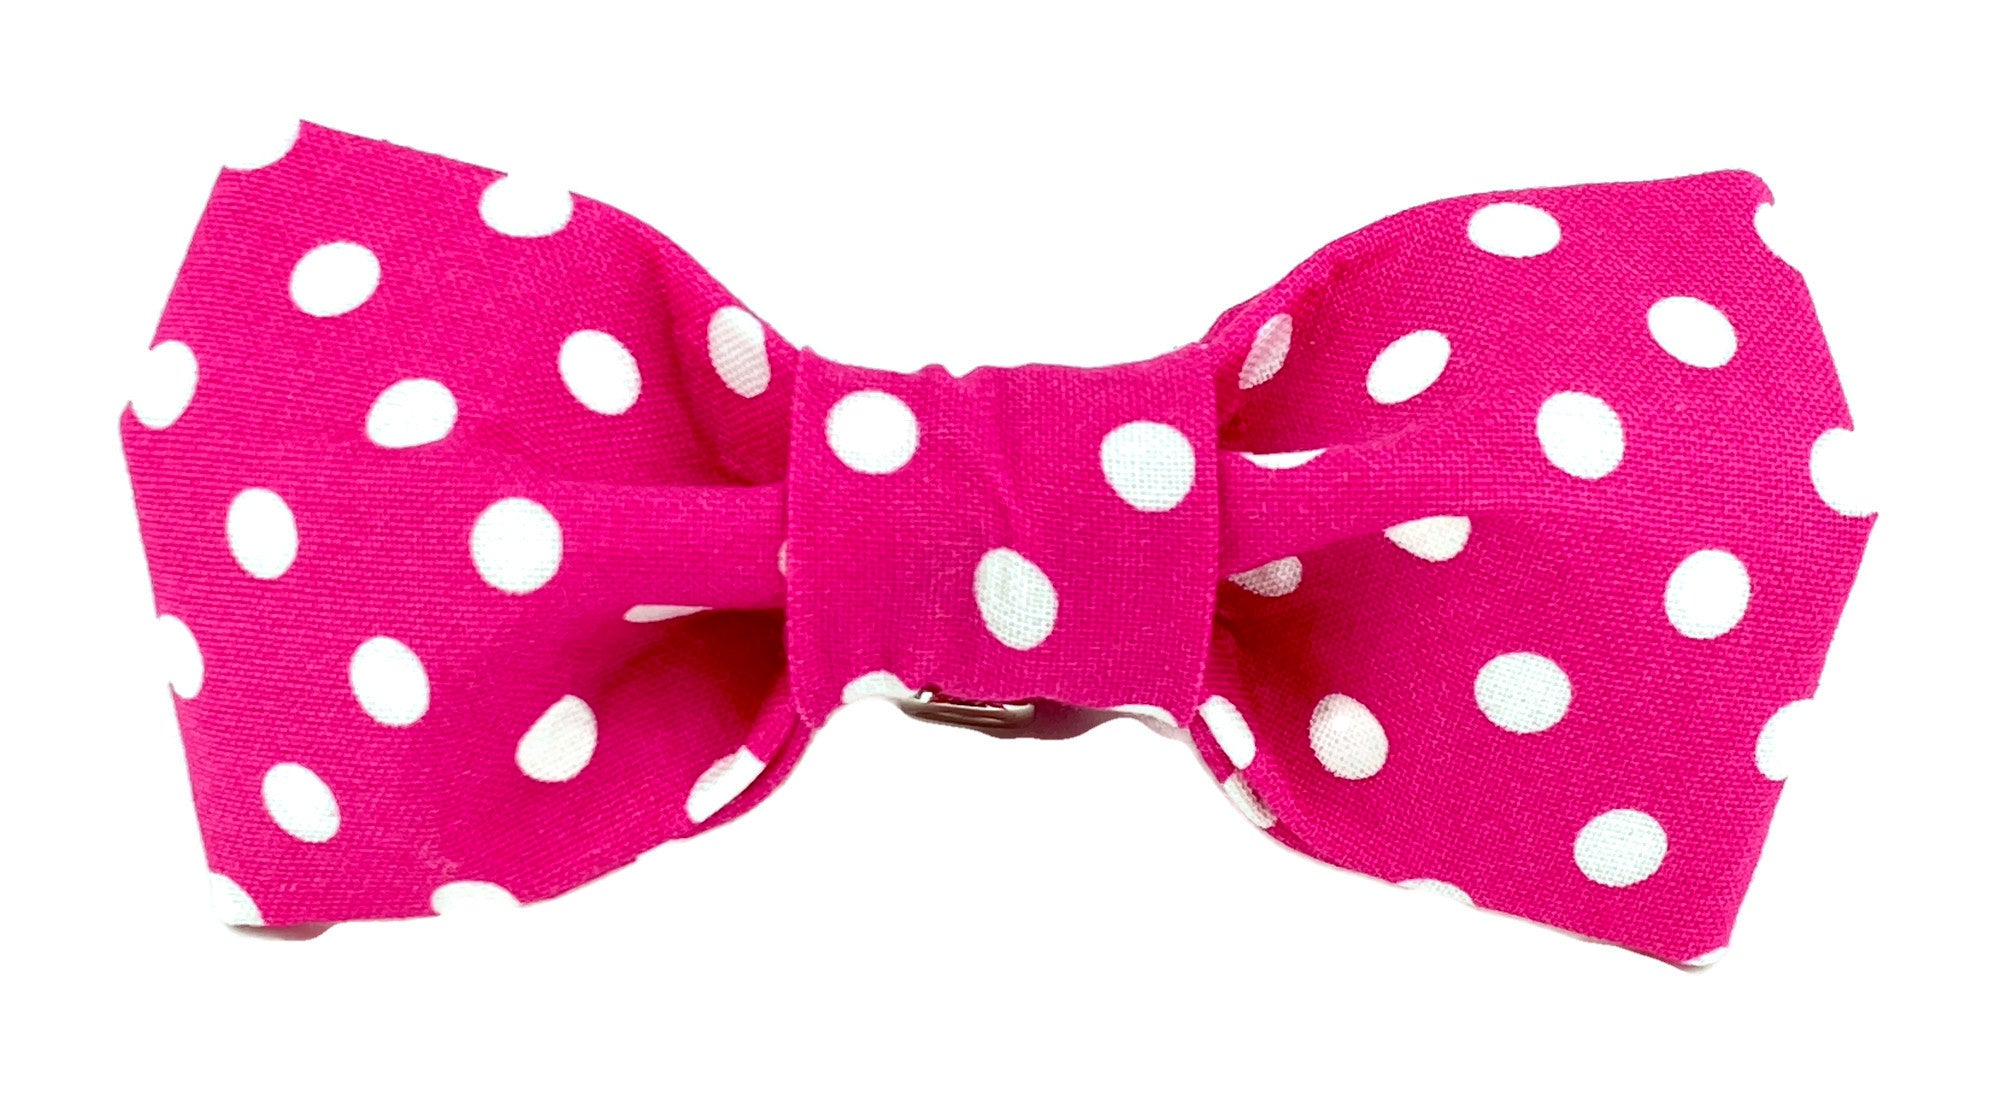 Hot Pink/ White Polka Dot Dog Bow Tie - 504